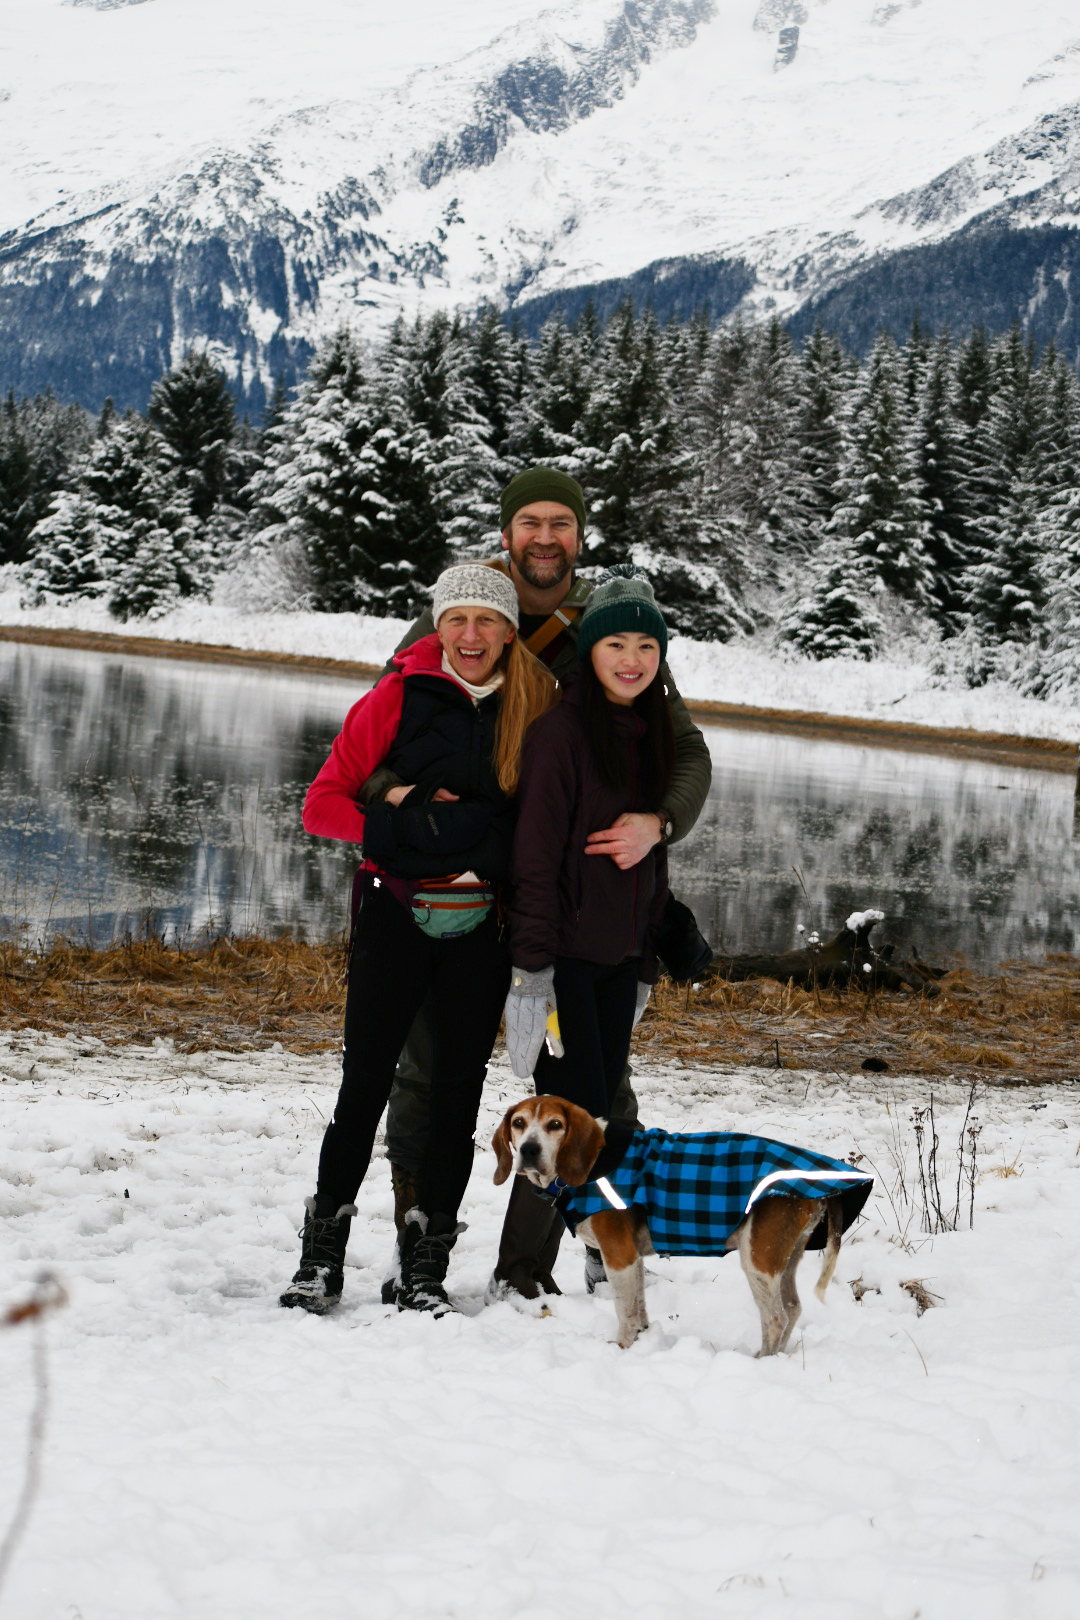 Photo of Pete, Sara and Annie Hagen, and a dog, standing in the snow next to Eagle River.